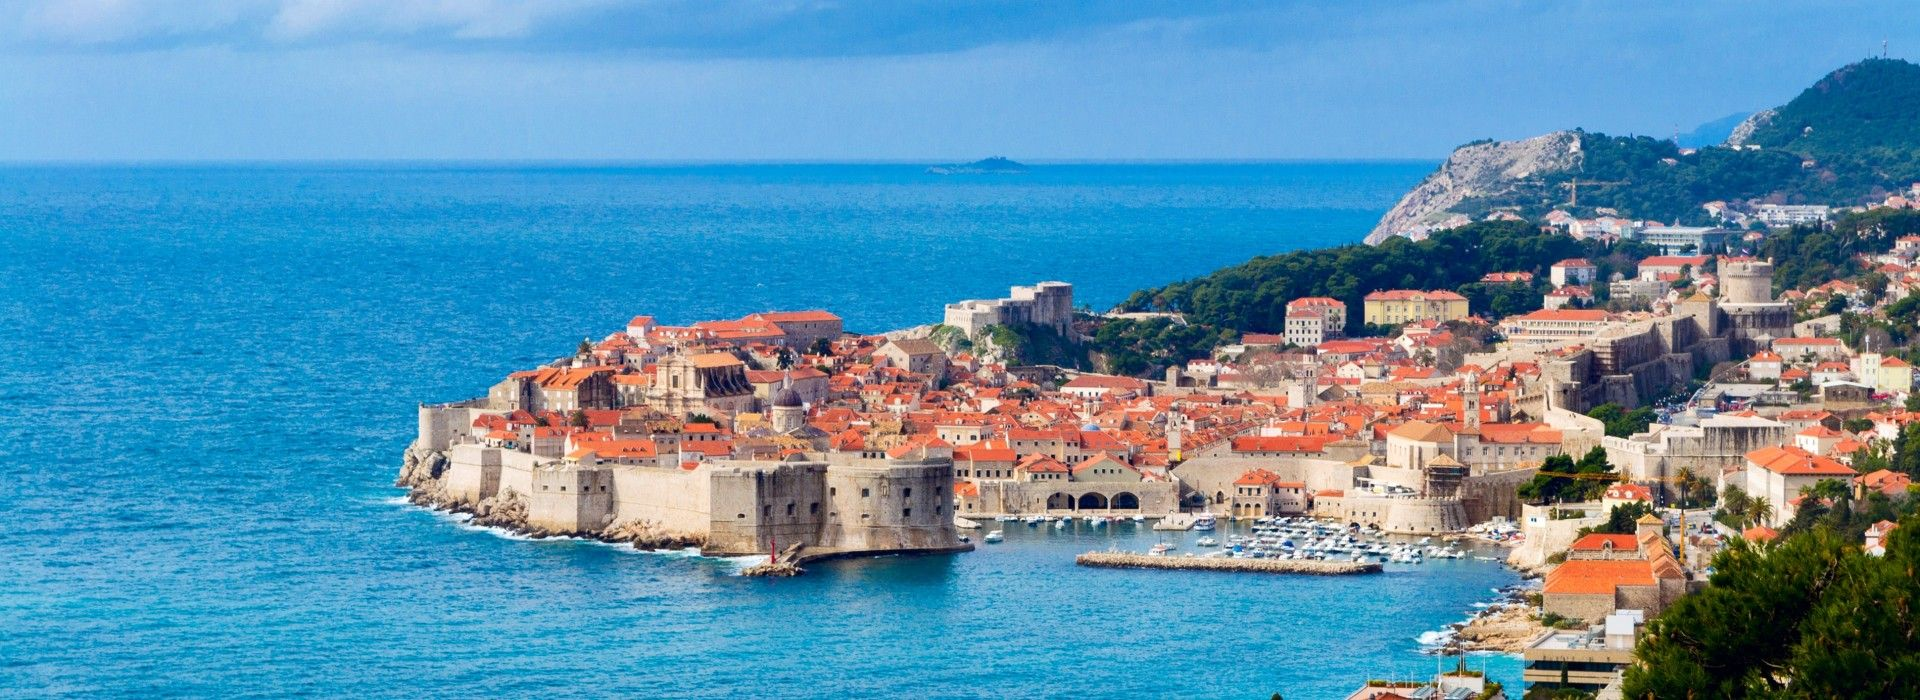 Wildlife, landscapes and nature Tours in Trogir